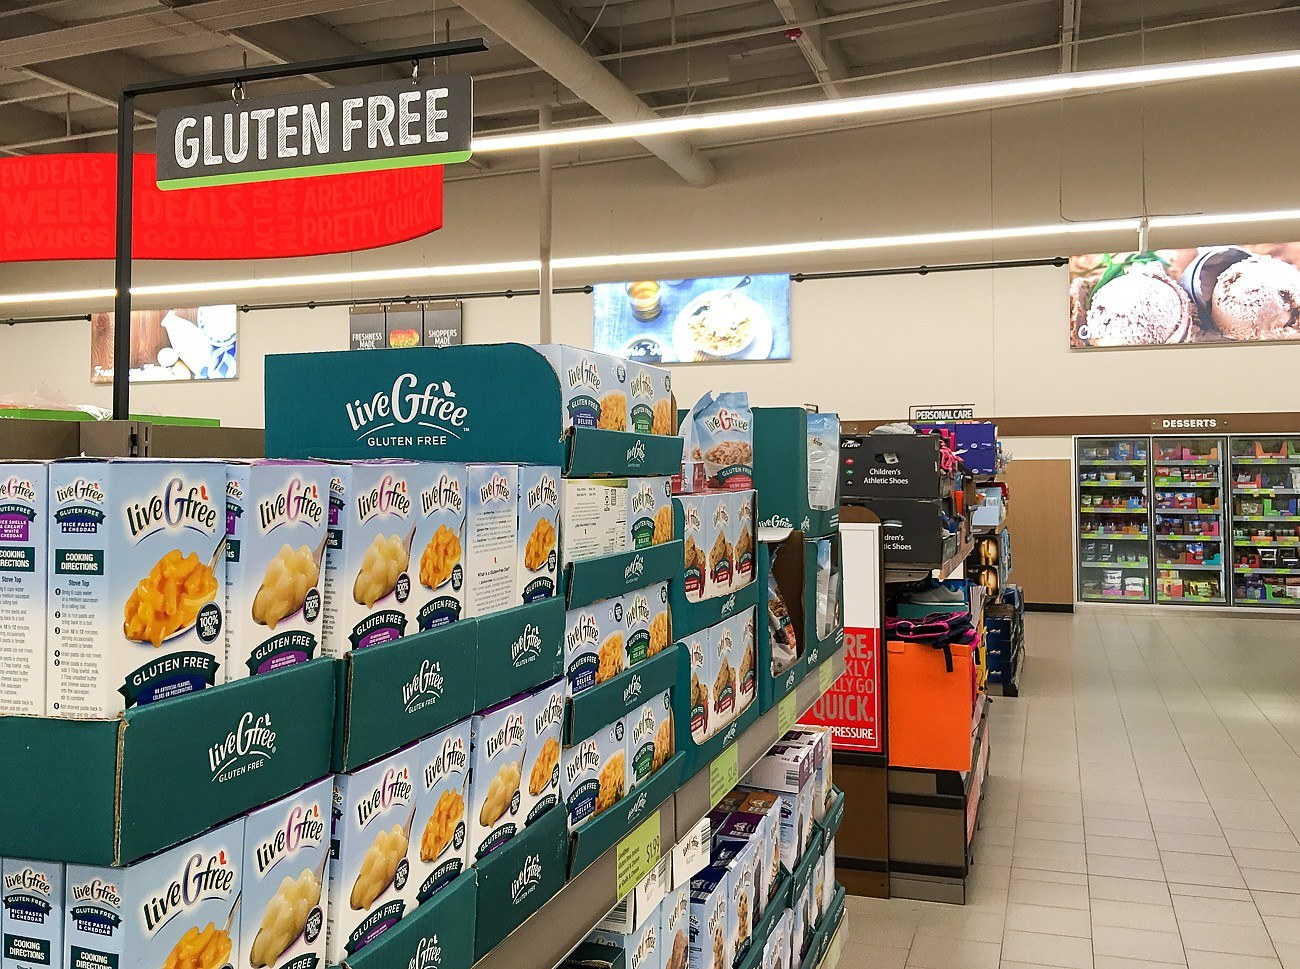 Gluten free options at Aldi in San Diego